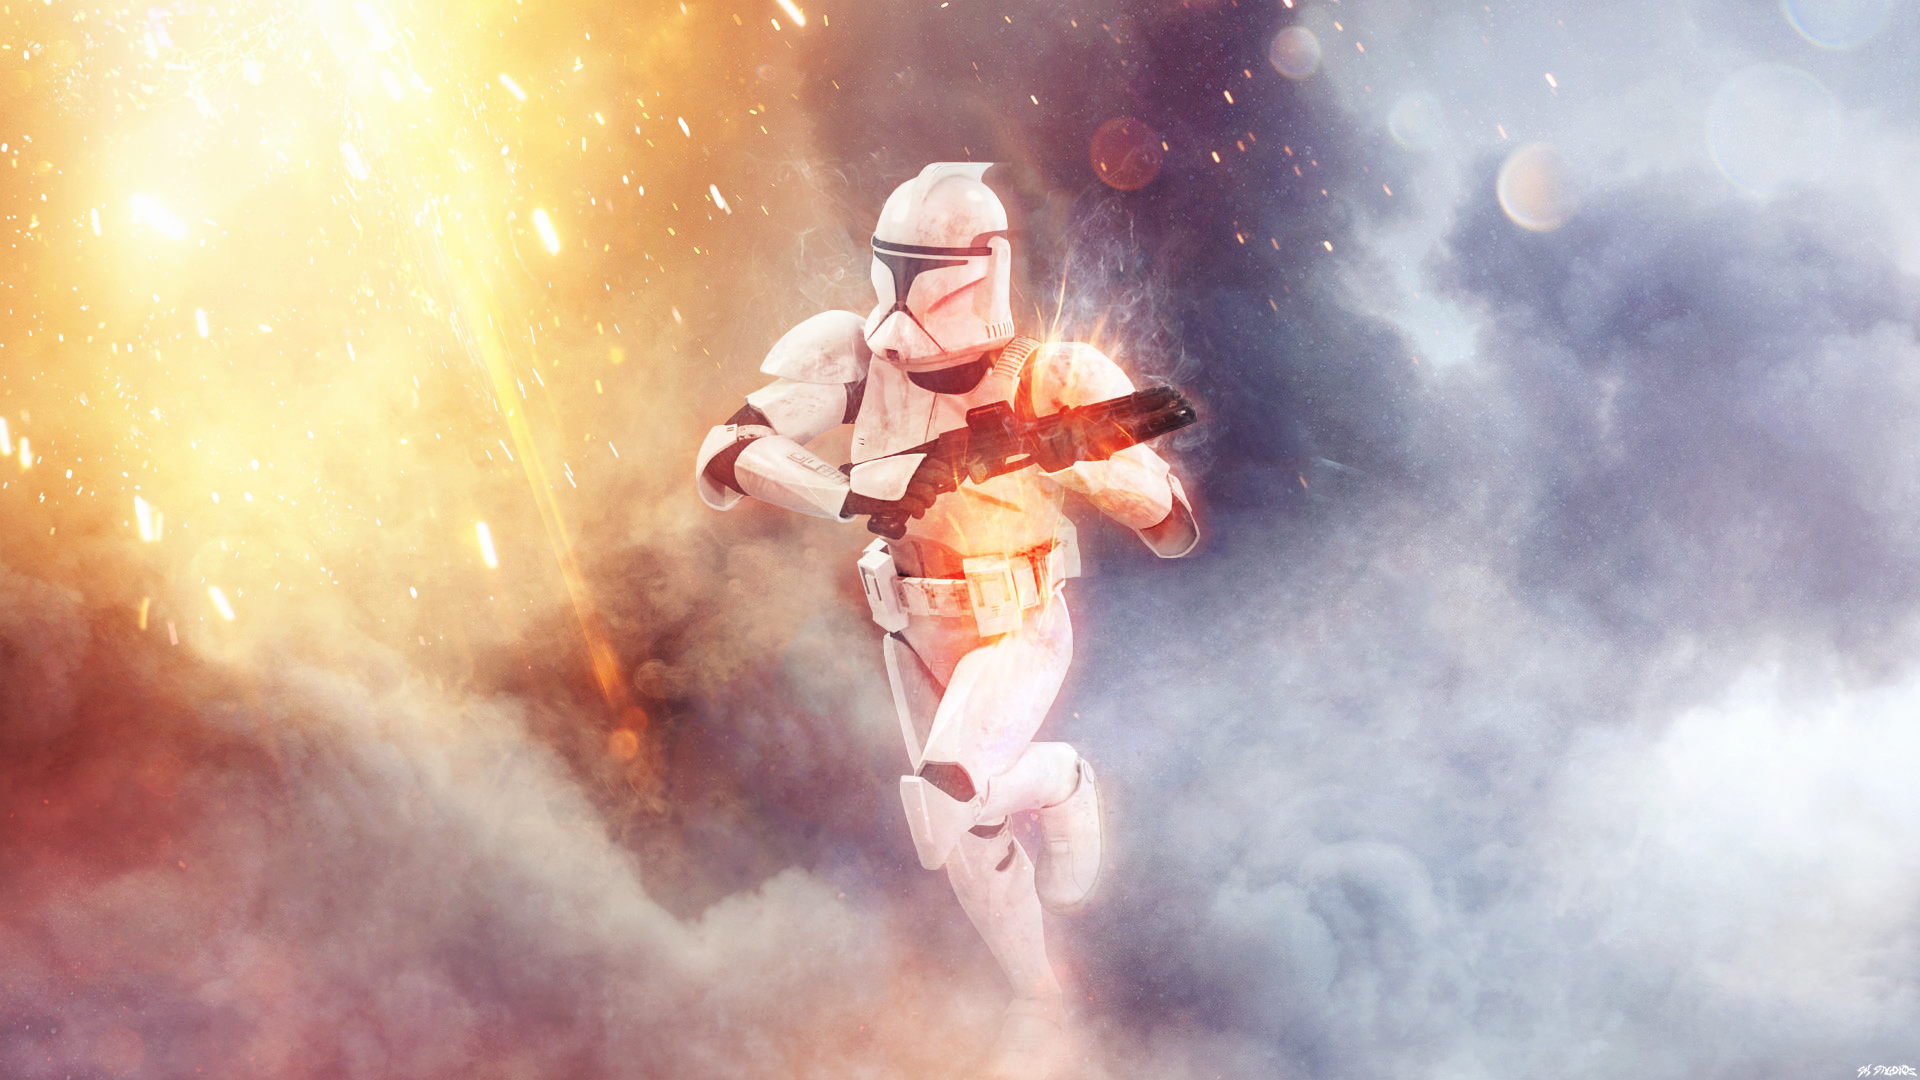 battlefront 1 phase 1 clone trooper by sk studios design on deviantart